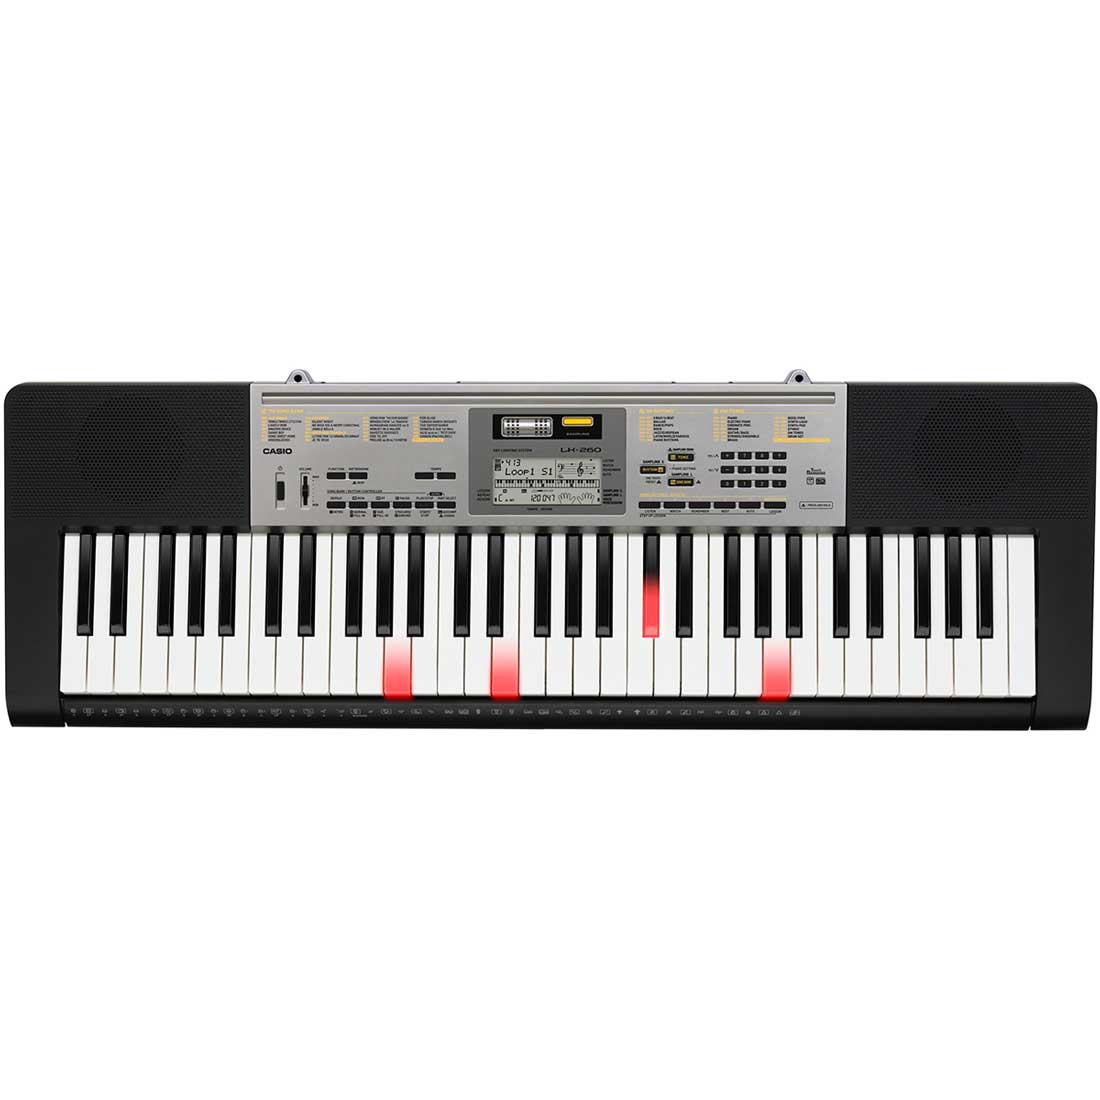 Casio LK-125 keyboard